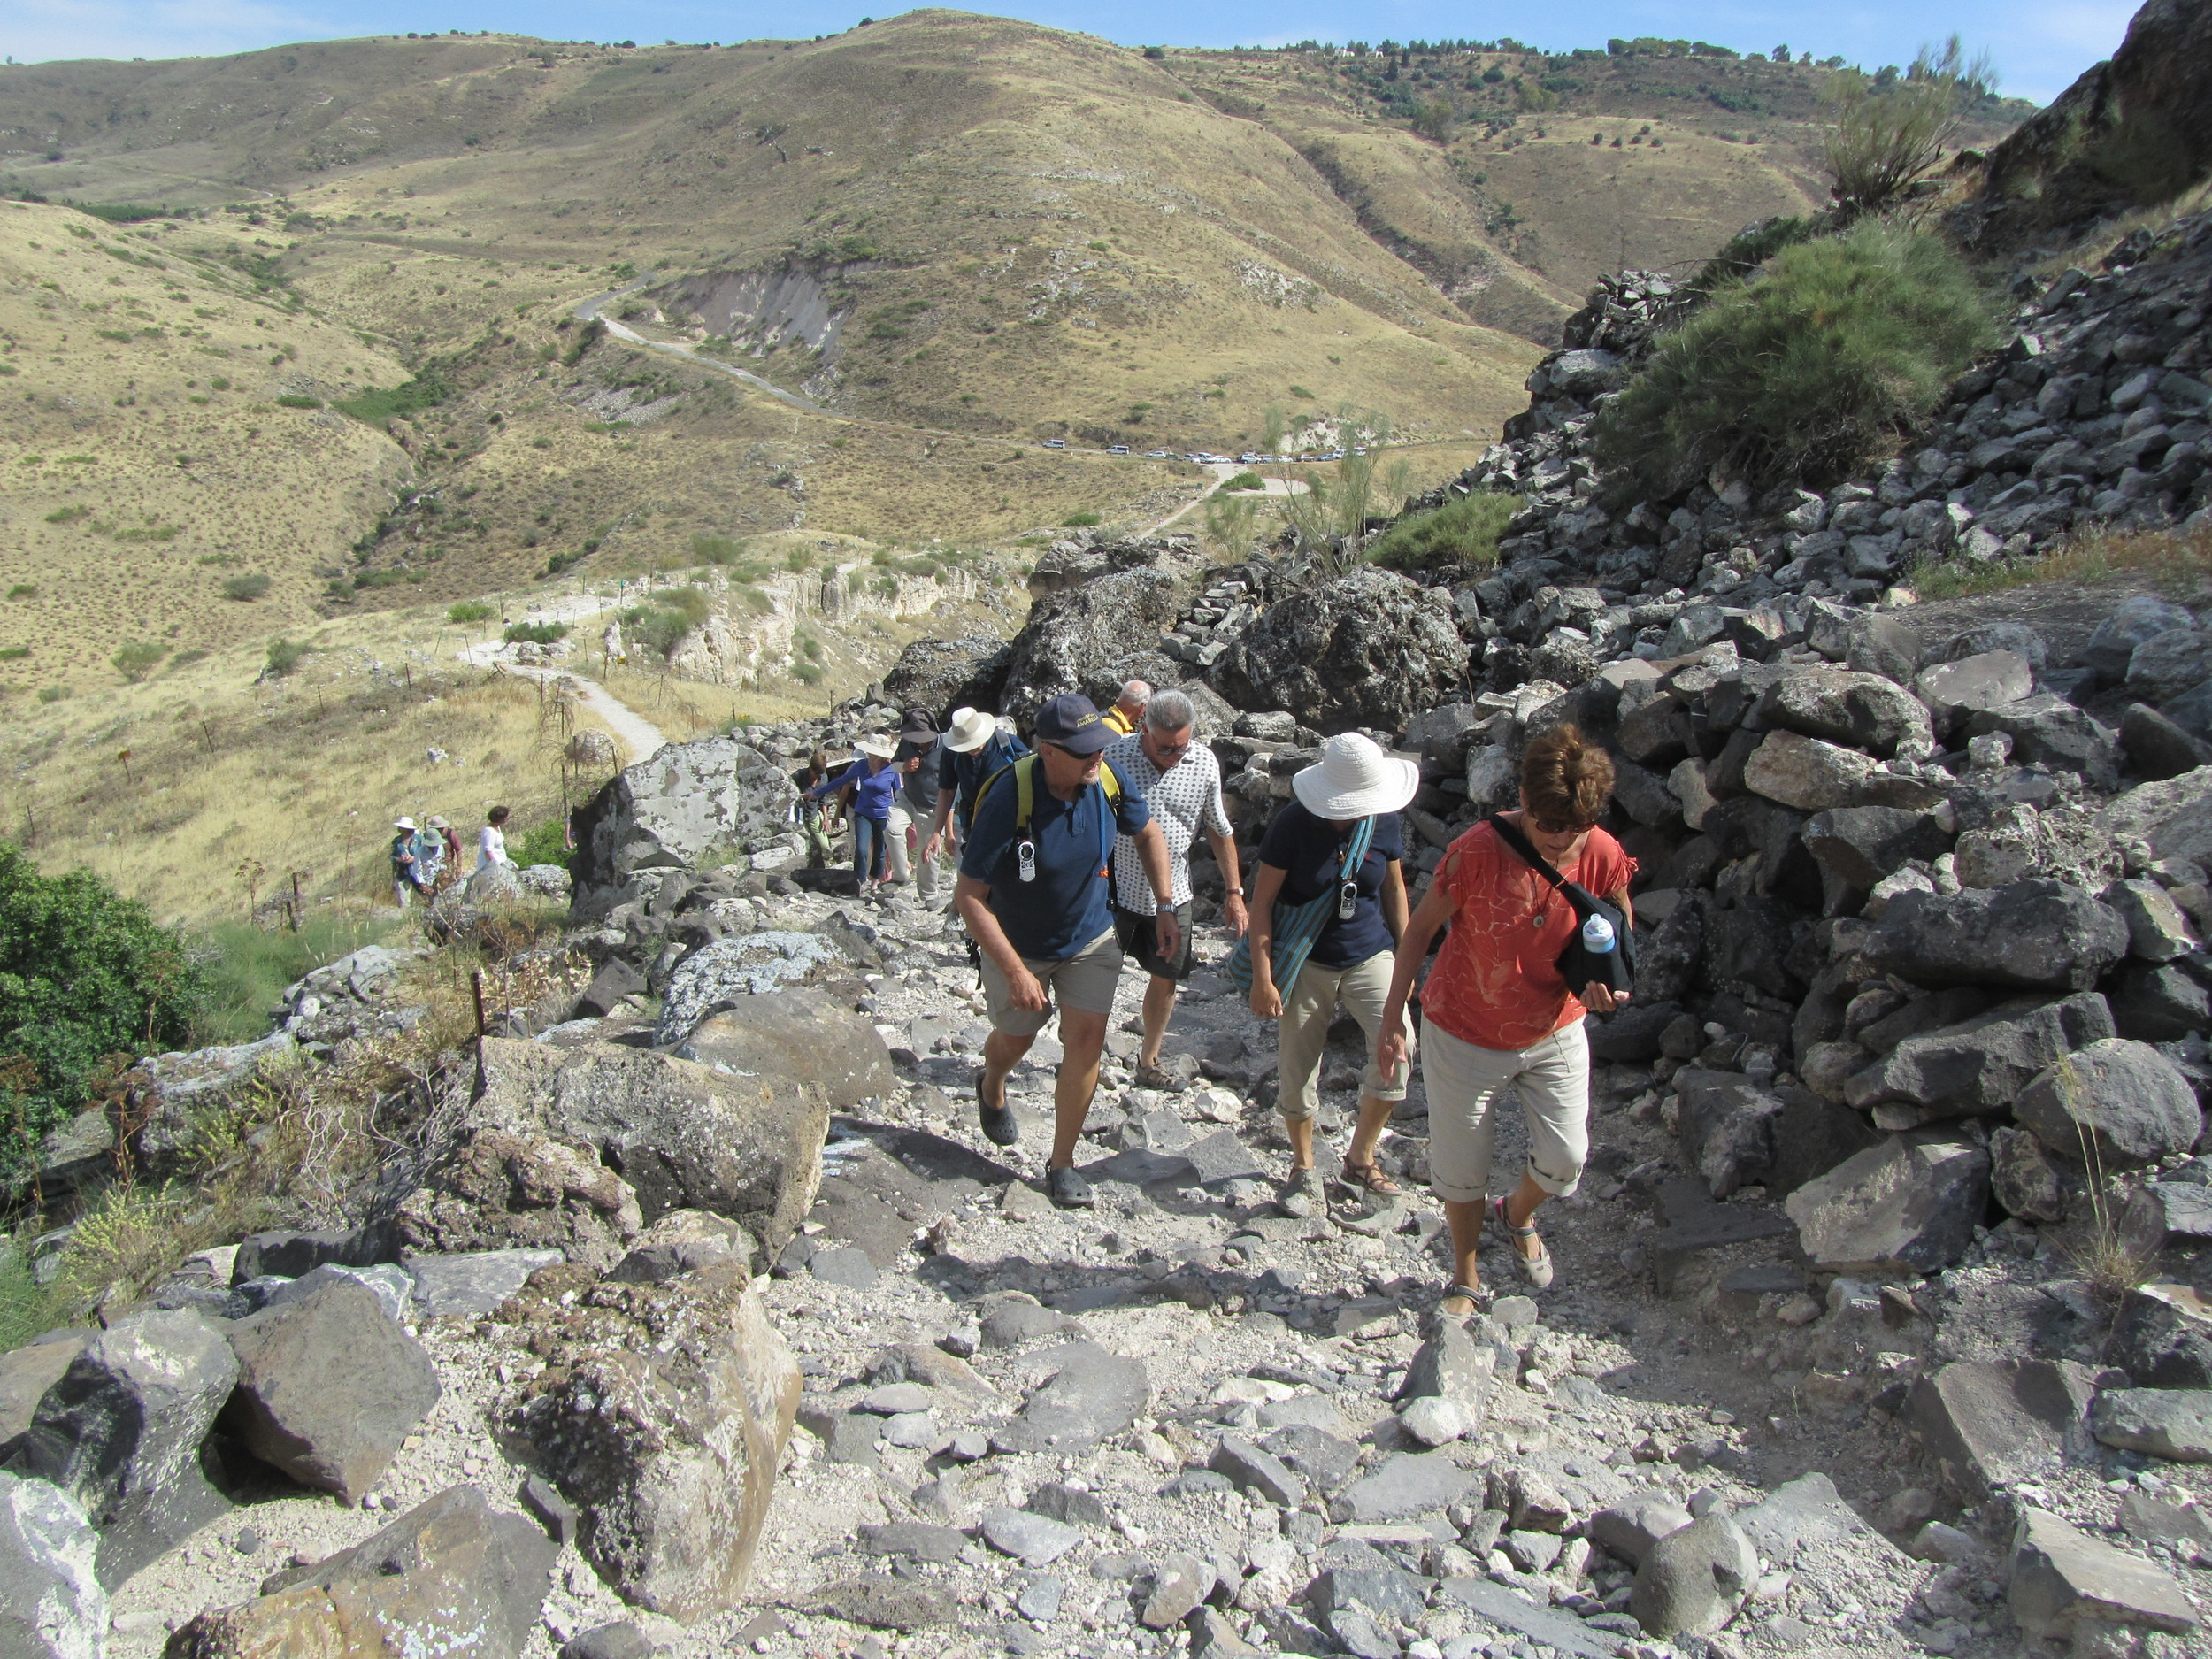 Climbing the Ancient Road to the Decapolis City of Hippos